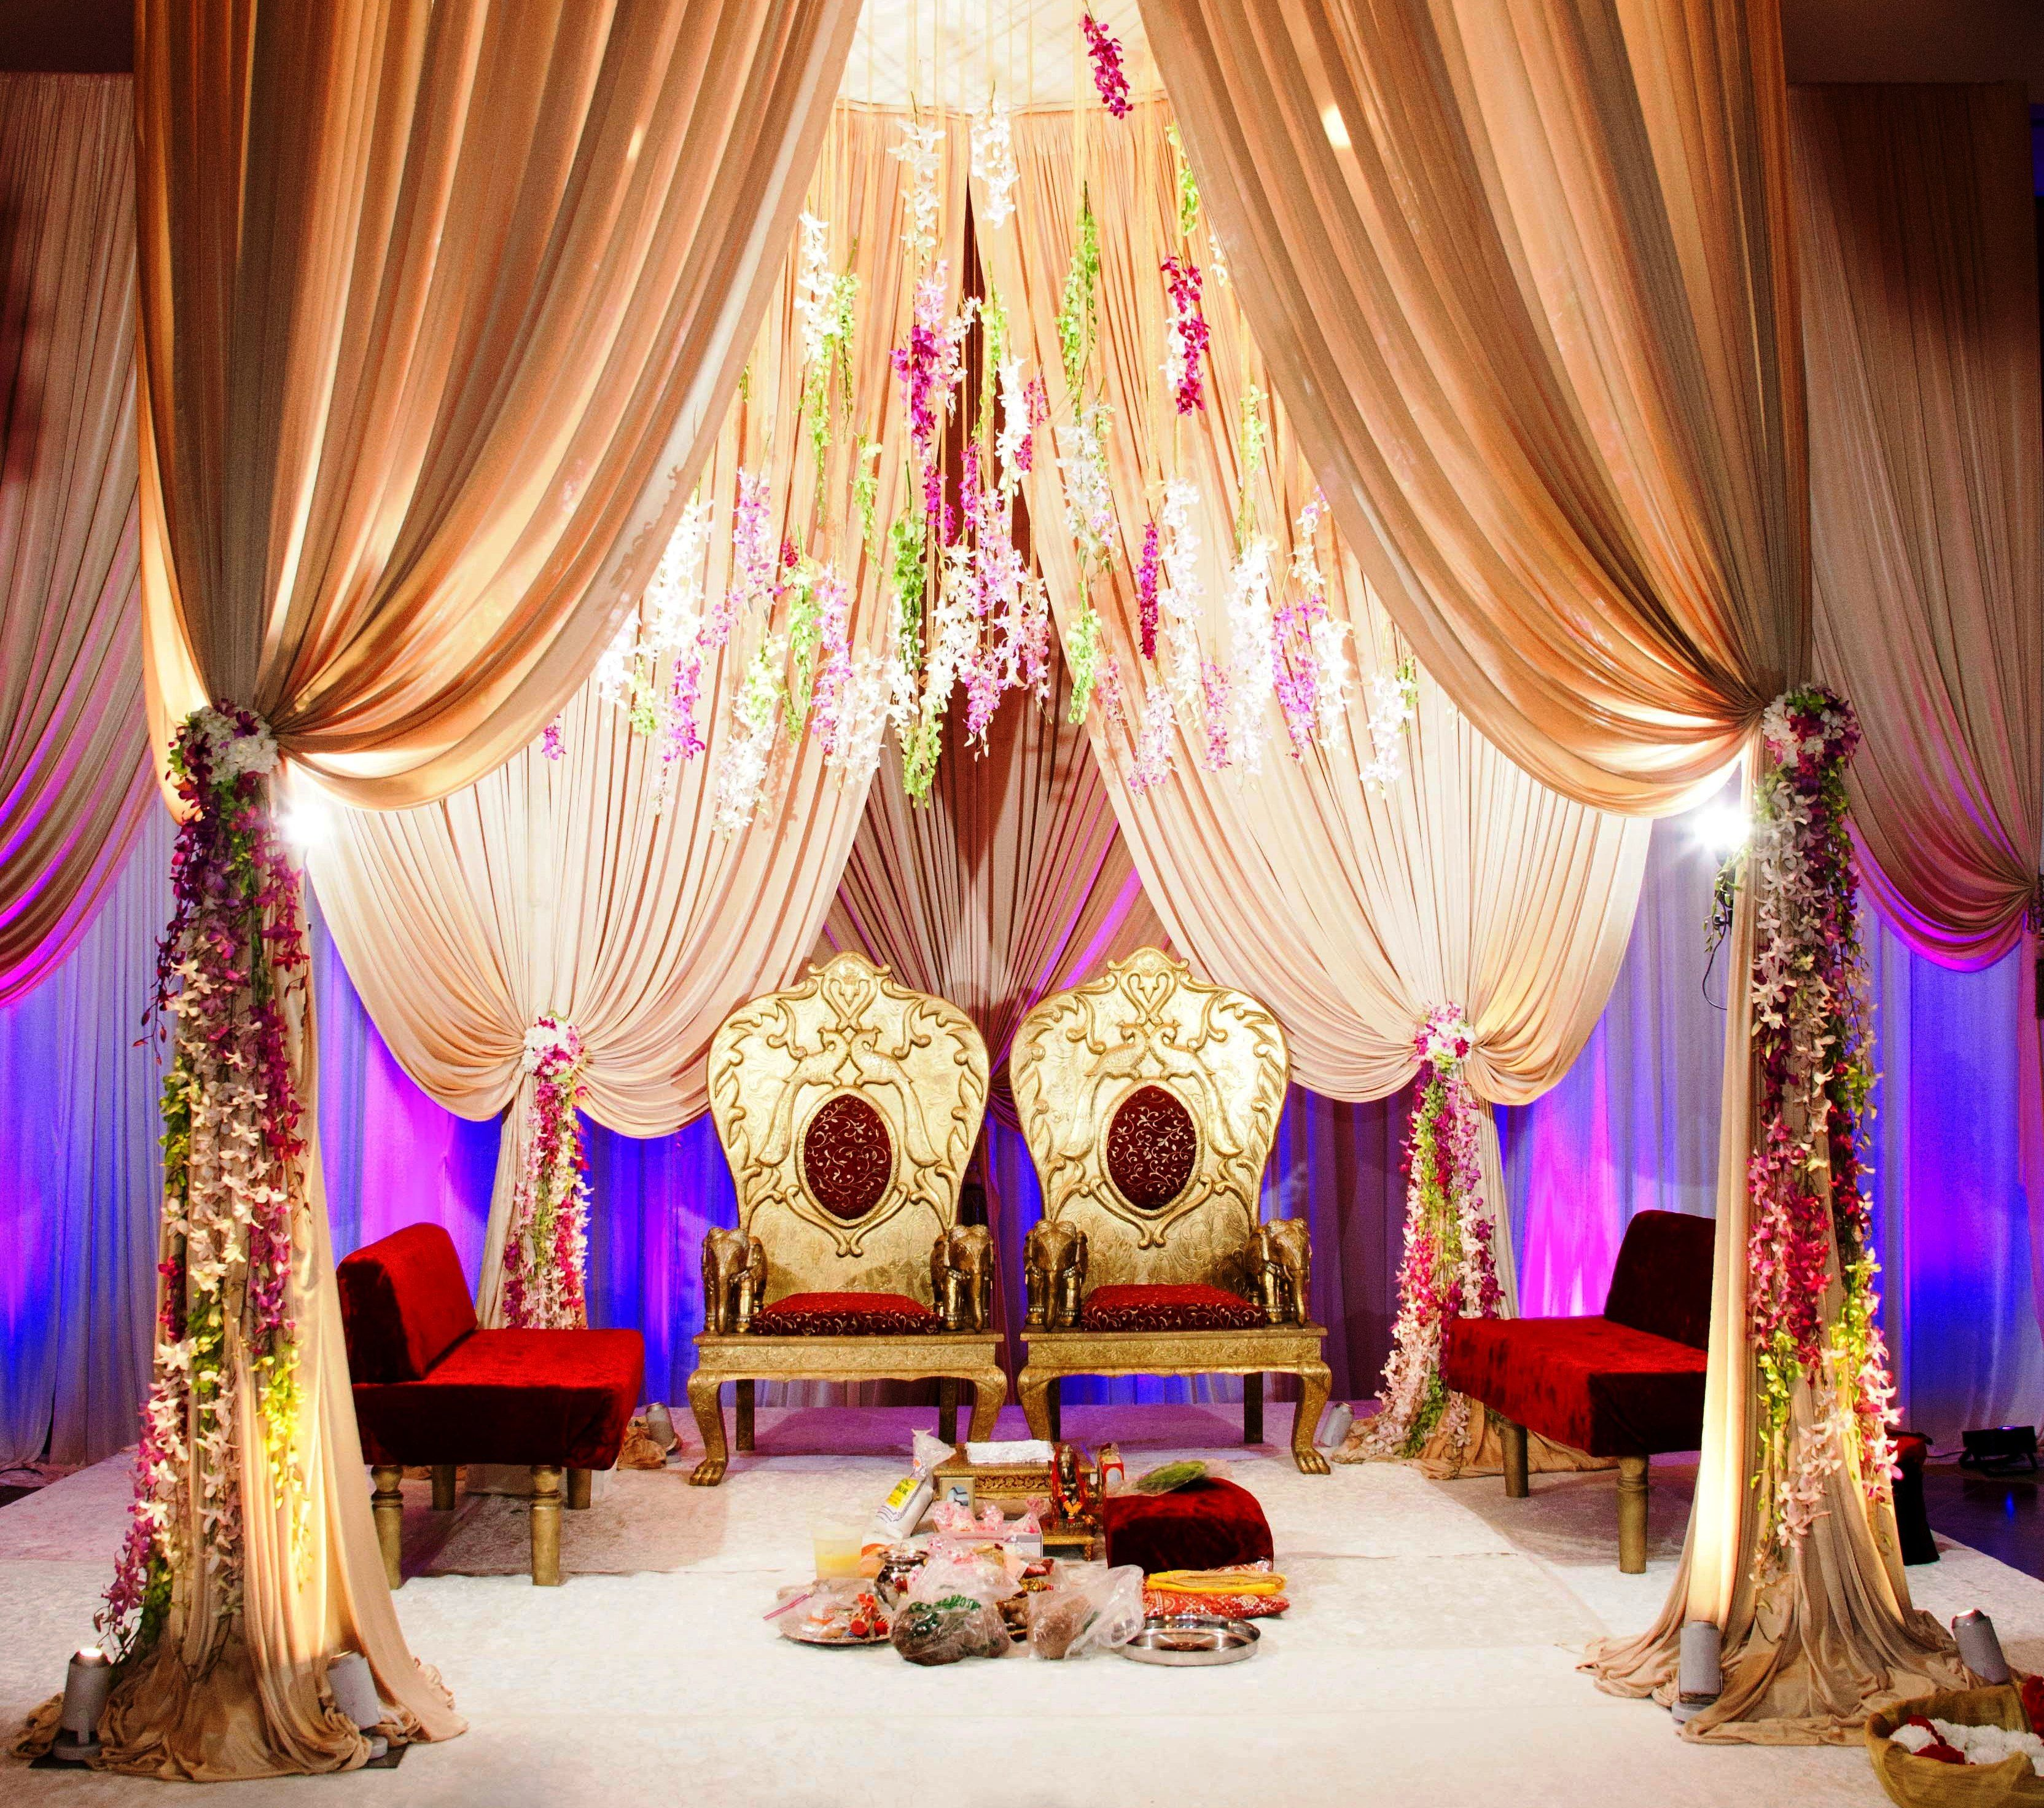 Hindu Wedding: Elegant Indian Wedding Ceremony Decoration With Dendrobium